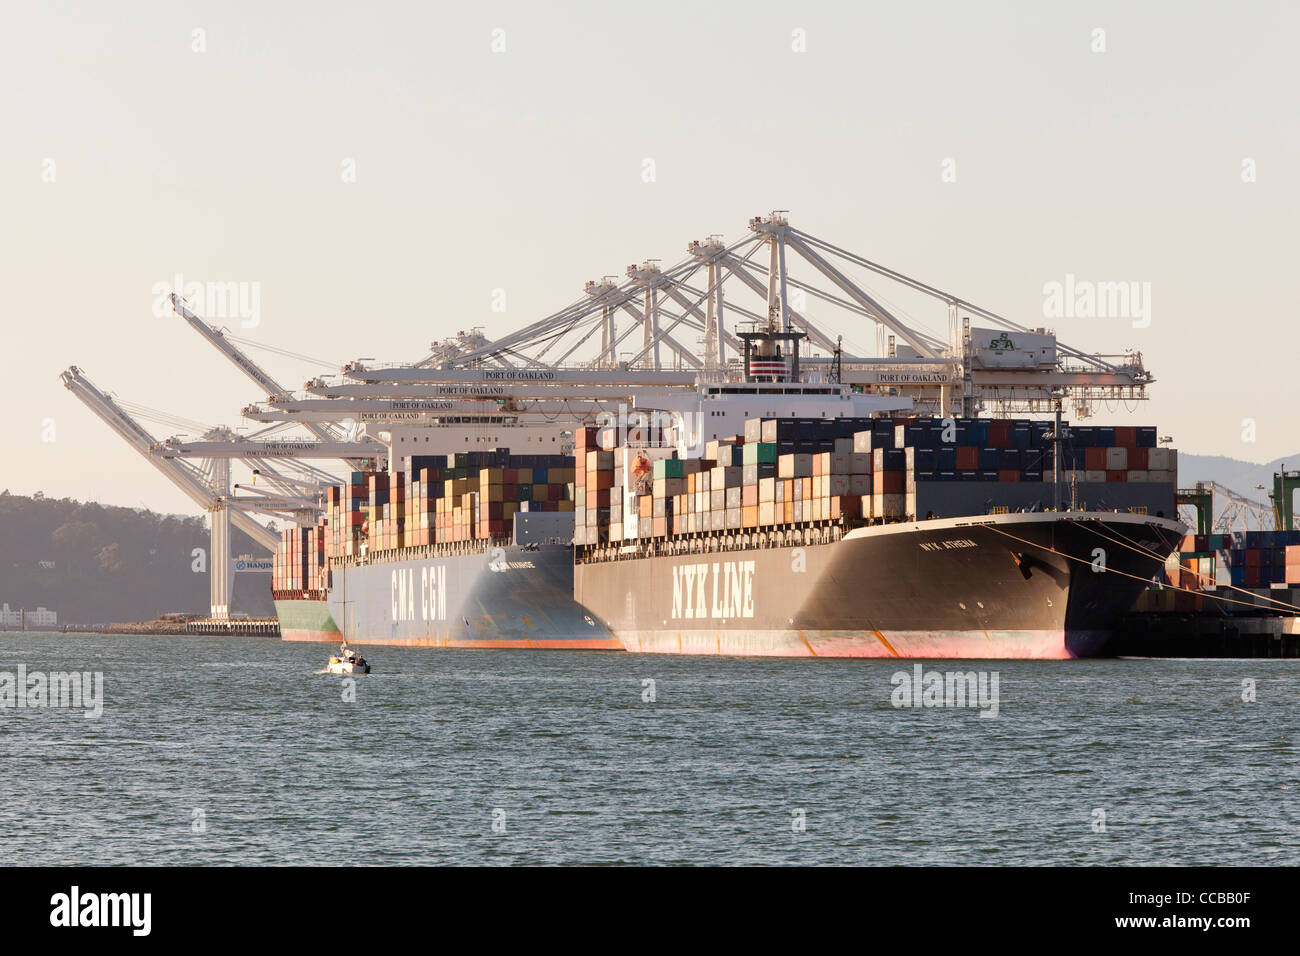 Container ships wait to get unloaded at the Port of Oakland - California USA - Stock Image